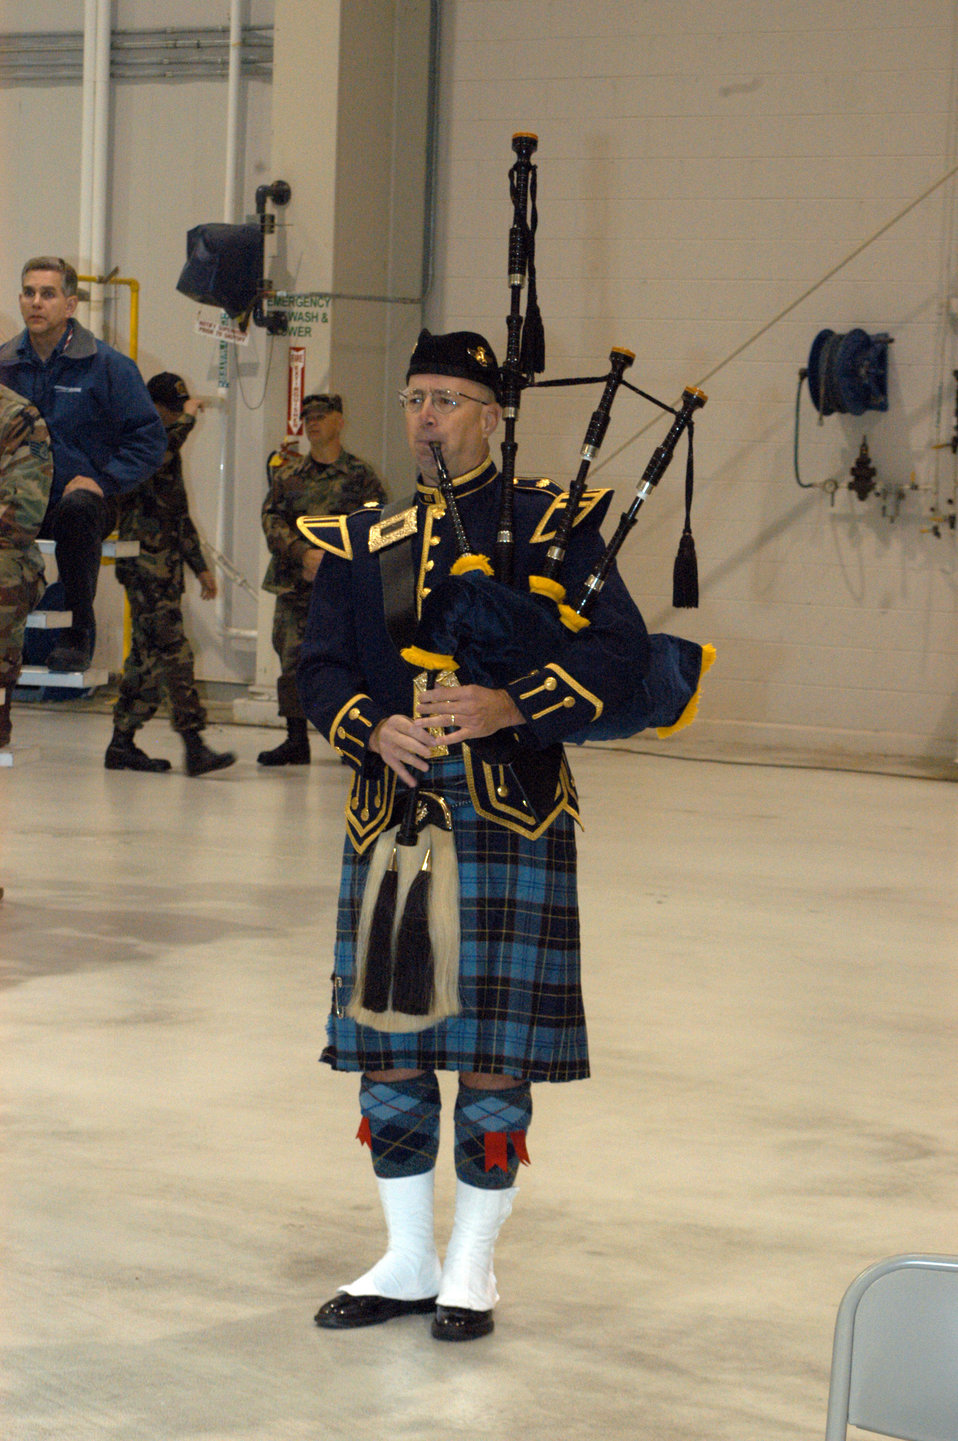 Joint Stars Airman plays bagpipes